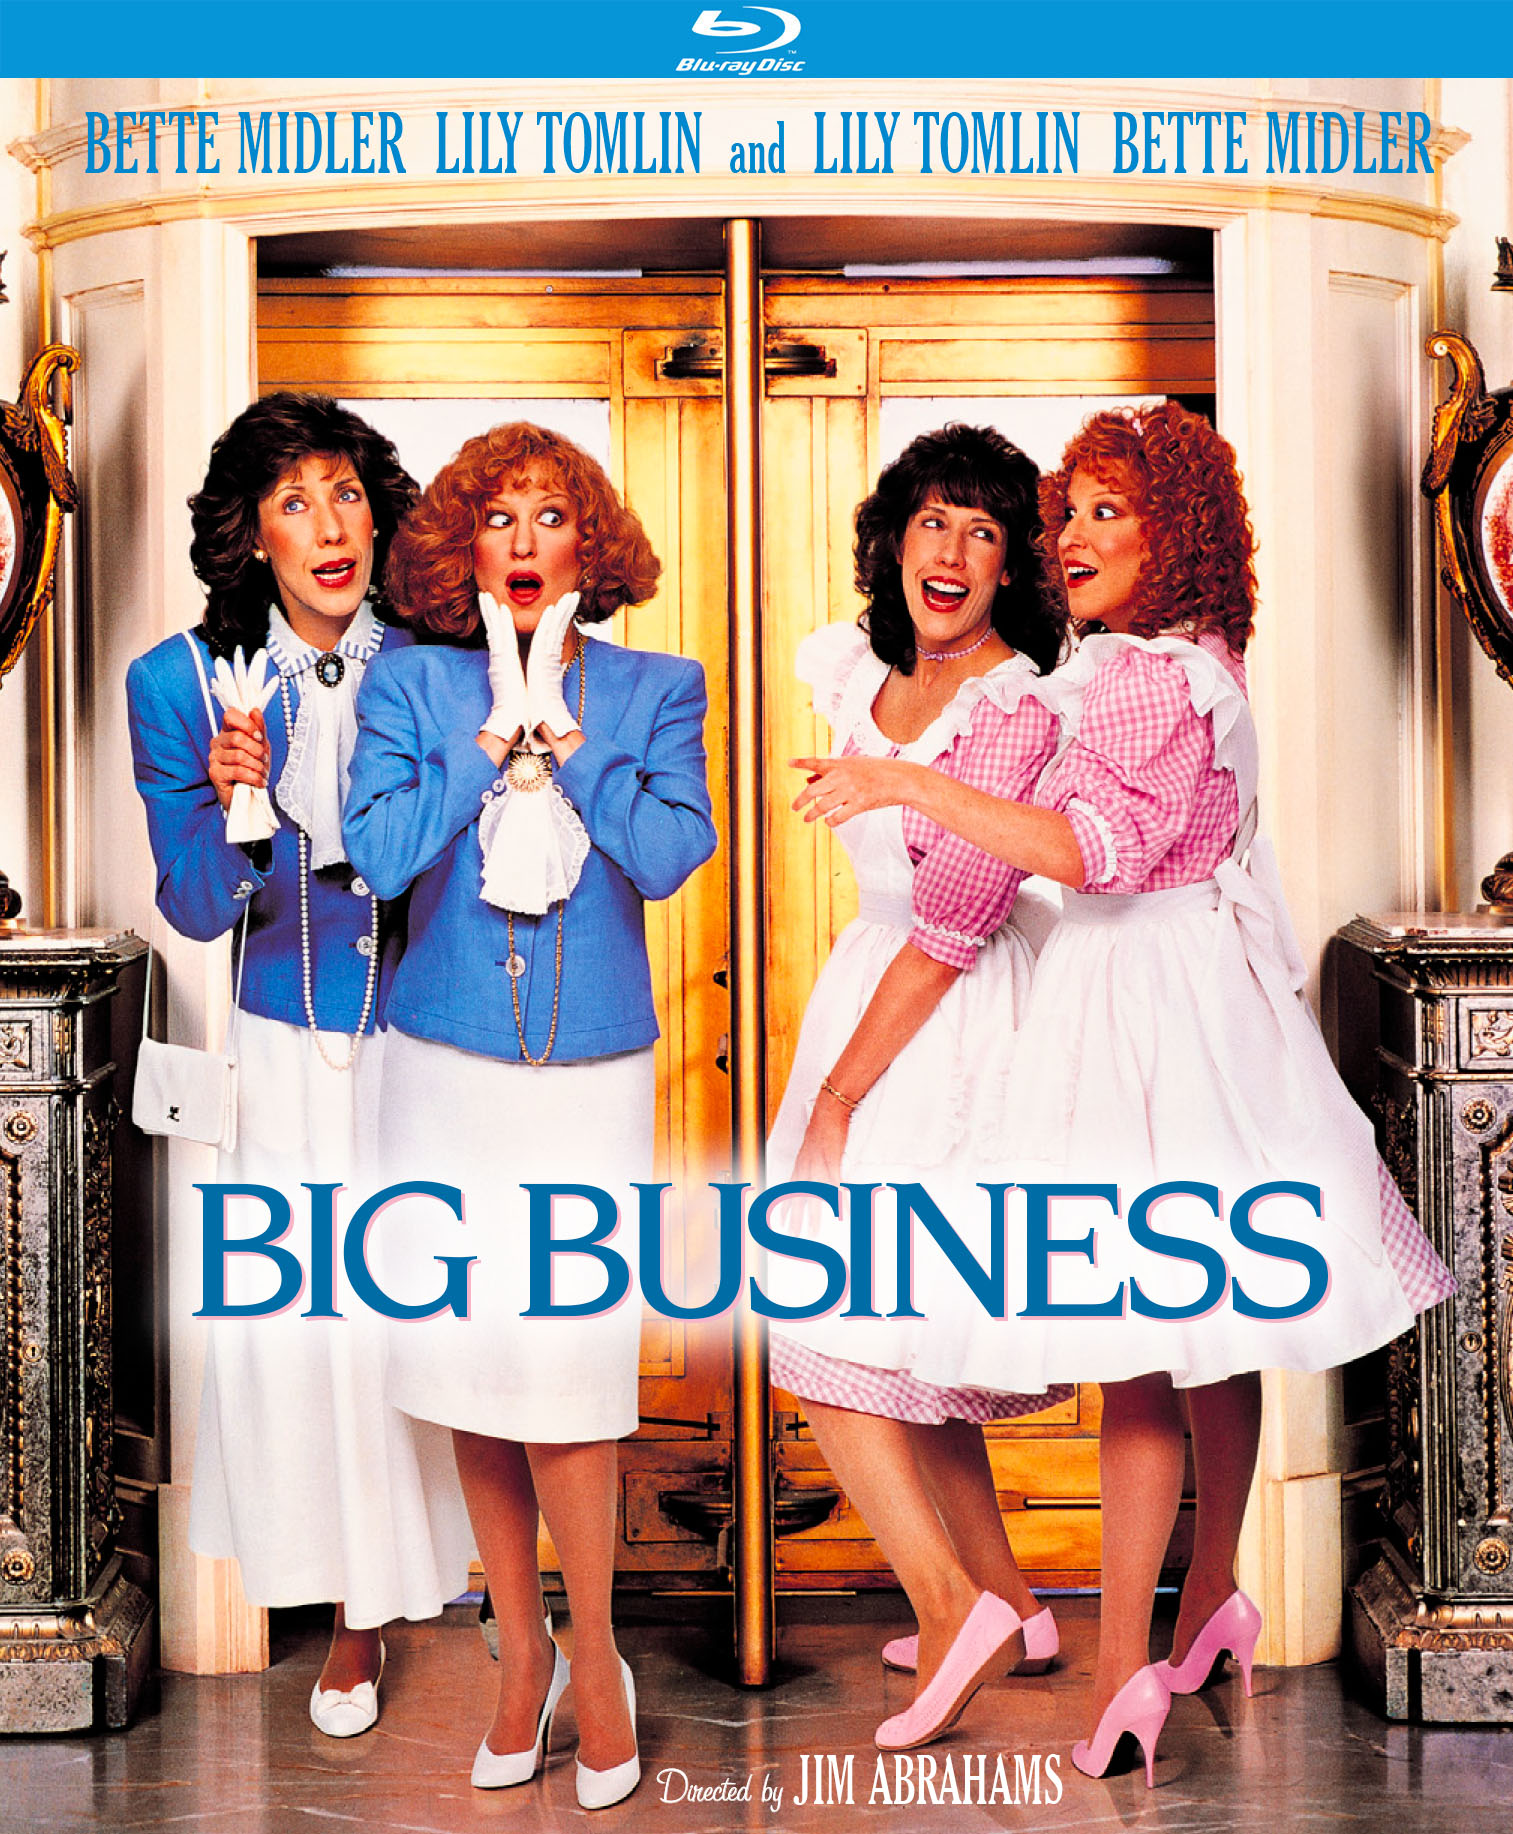 Big Business Special Edition Blu Ray Kino Lorber Home Video